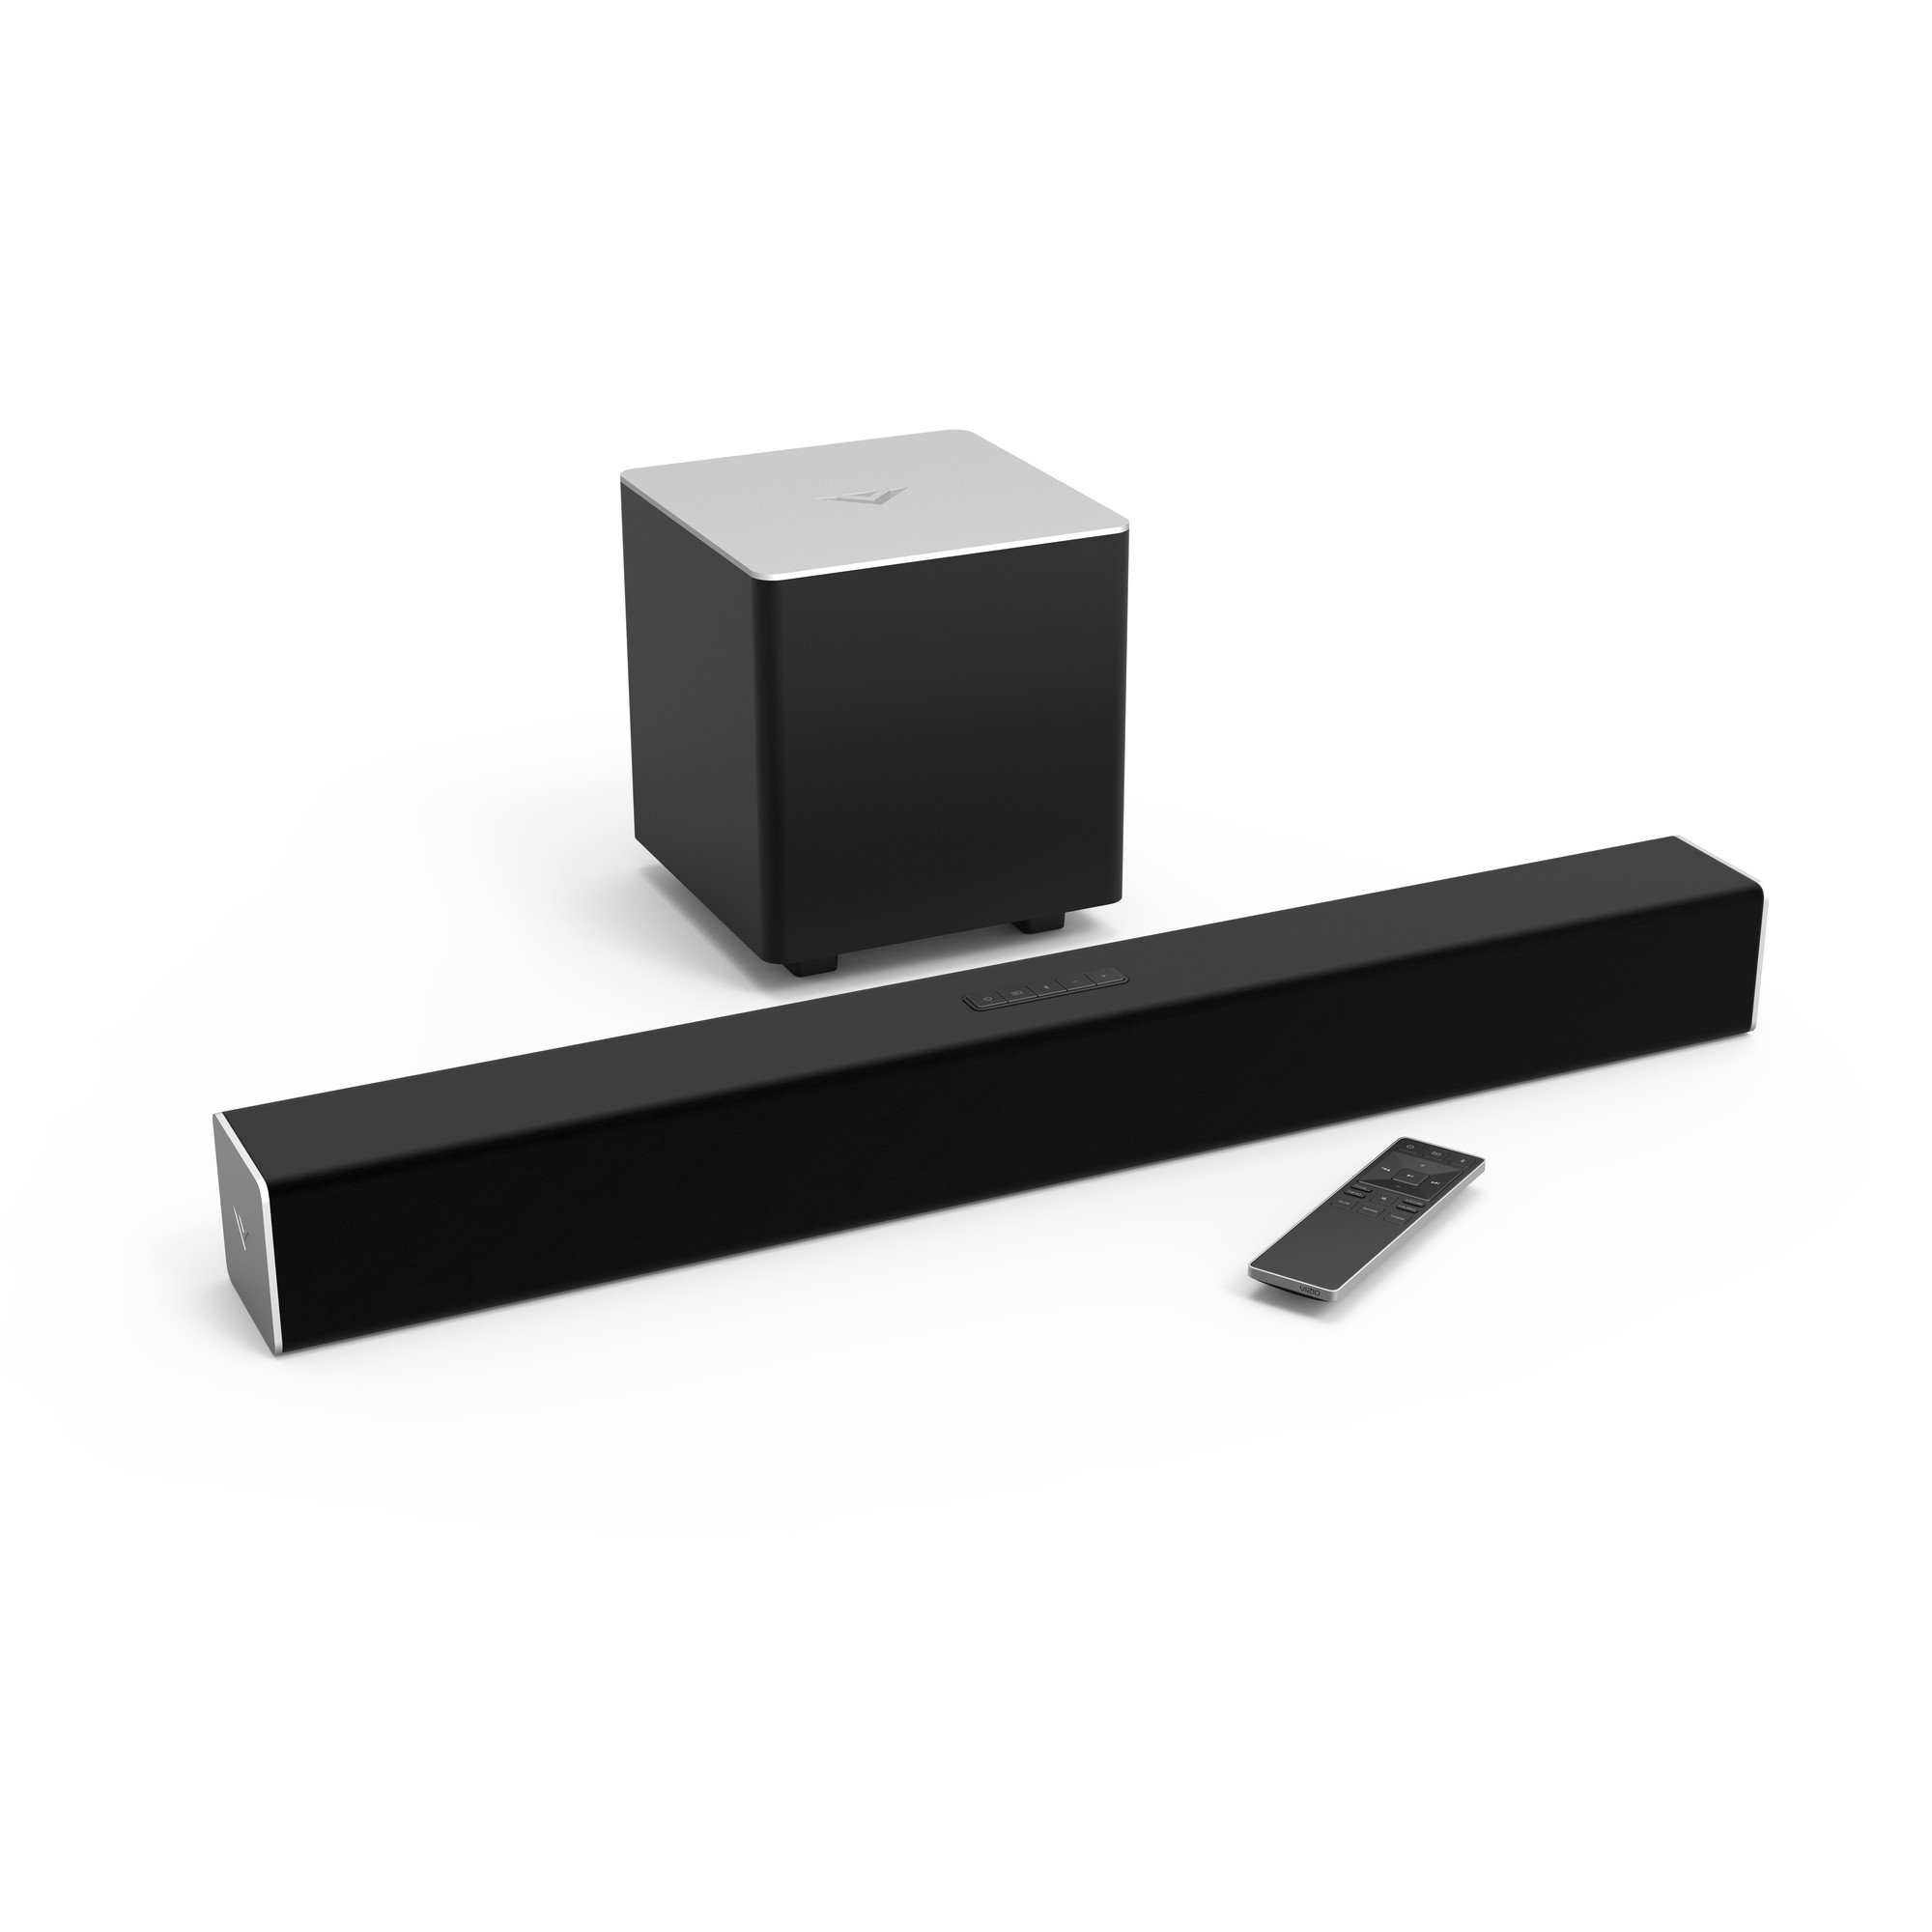 VIZIO SB2821-D6 Sound Bar System by VIZIO